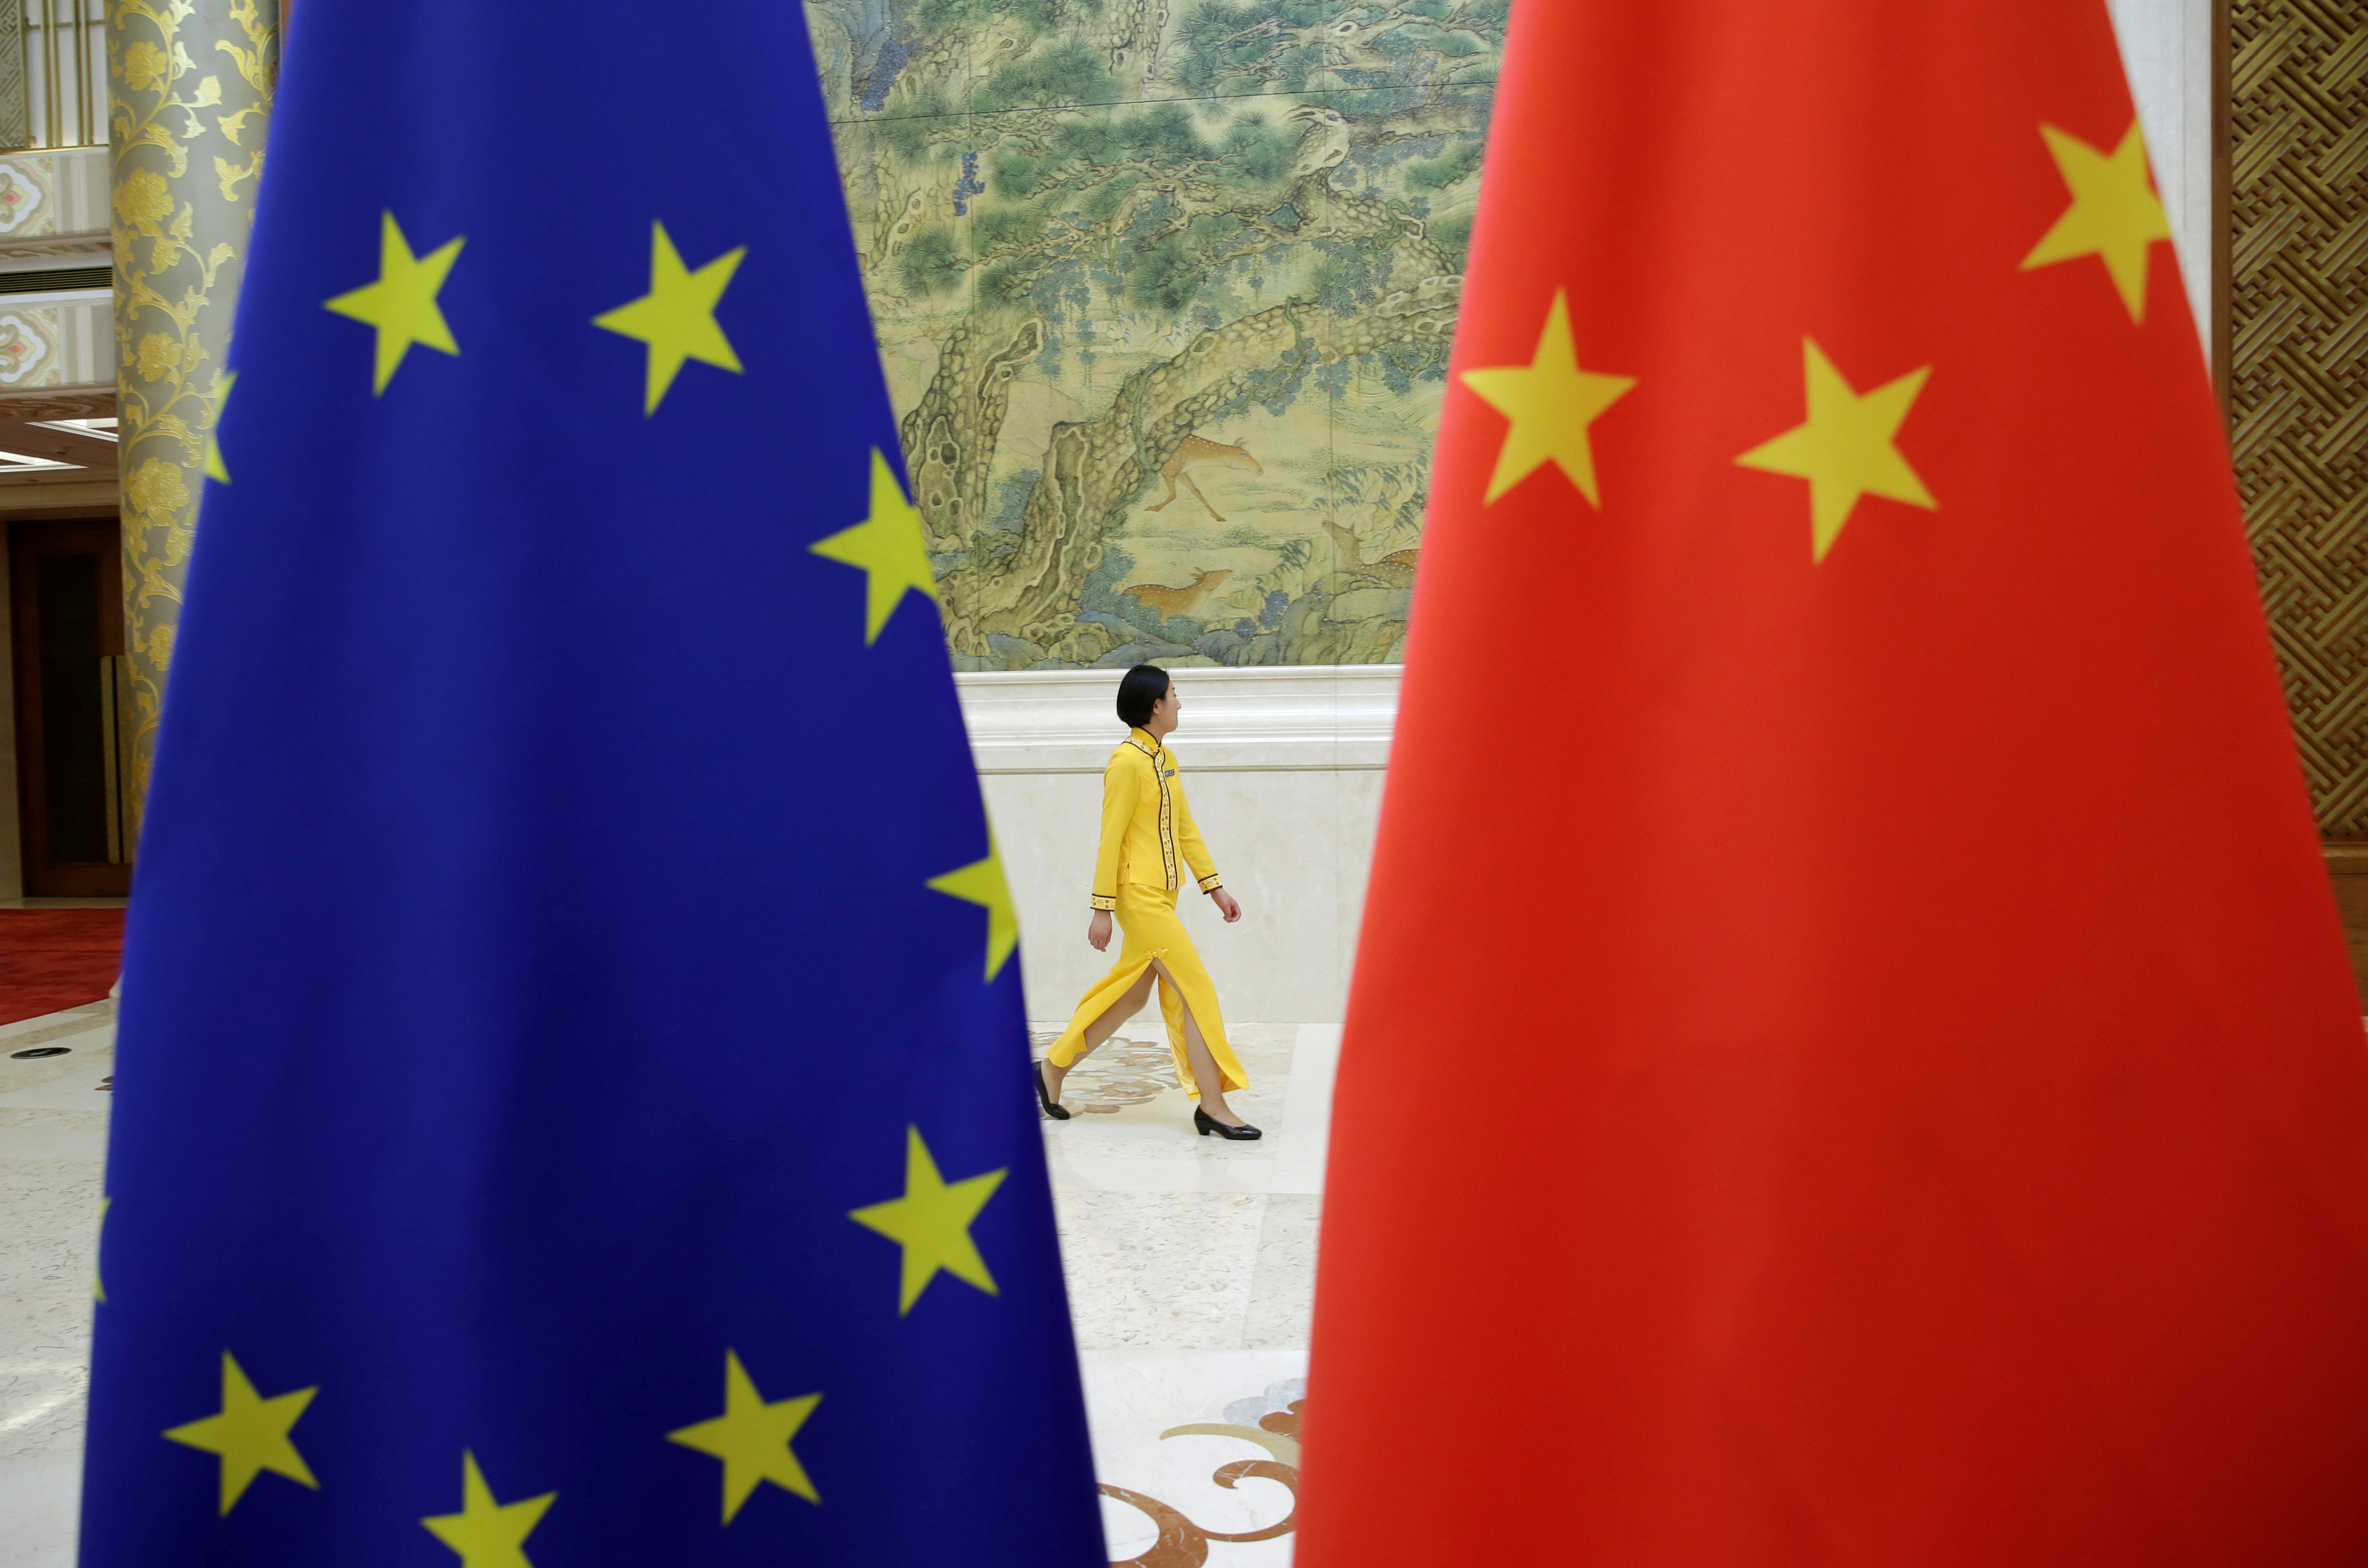 An attendant walks past EU and China flags ahead of the EU-China High-level Economic Dialogue at Diaoyutai State Guesthouse in Beijing, China June 25, 2018. REUTERS/Jason Lee